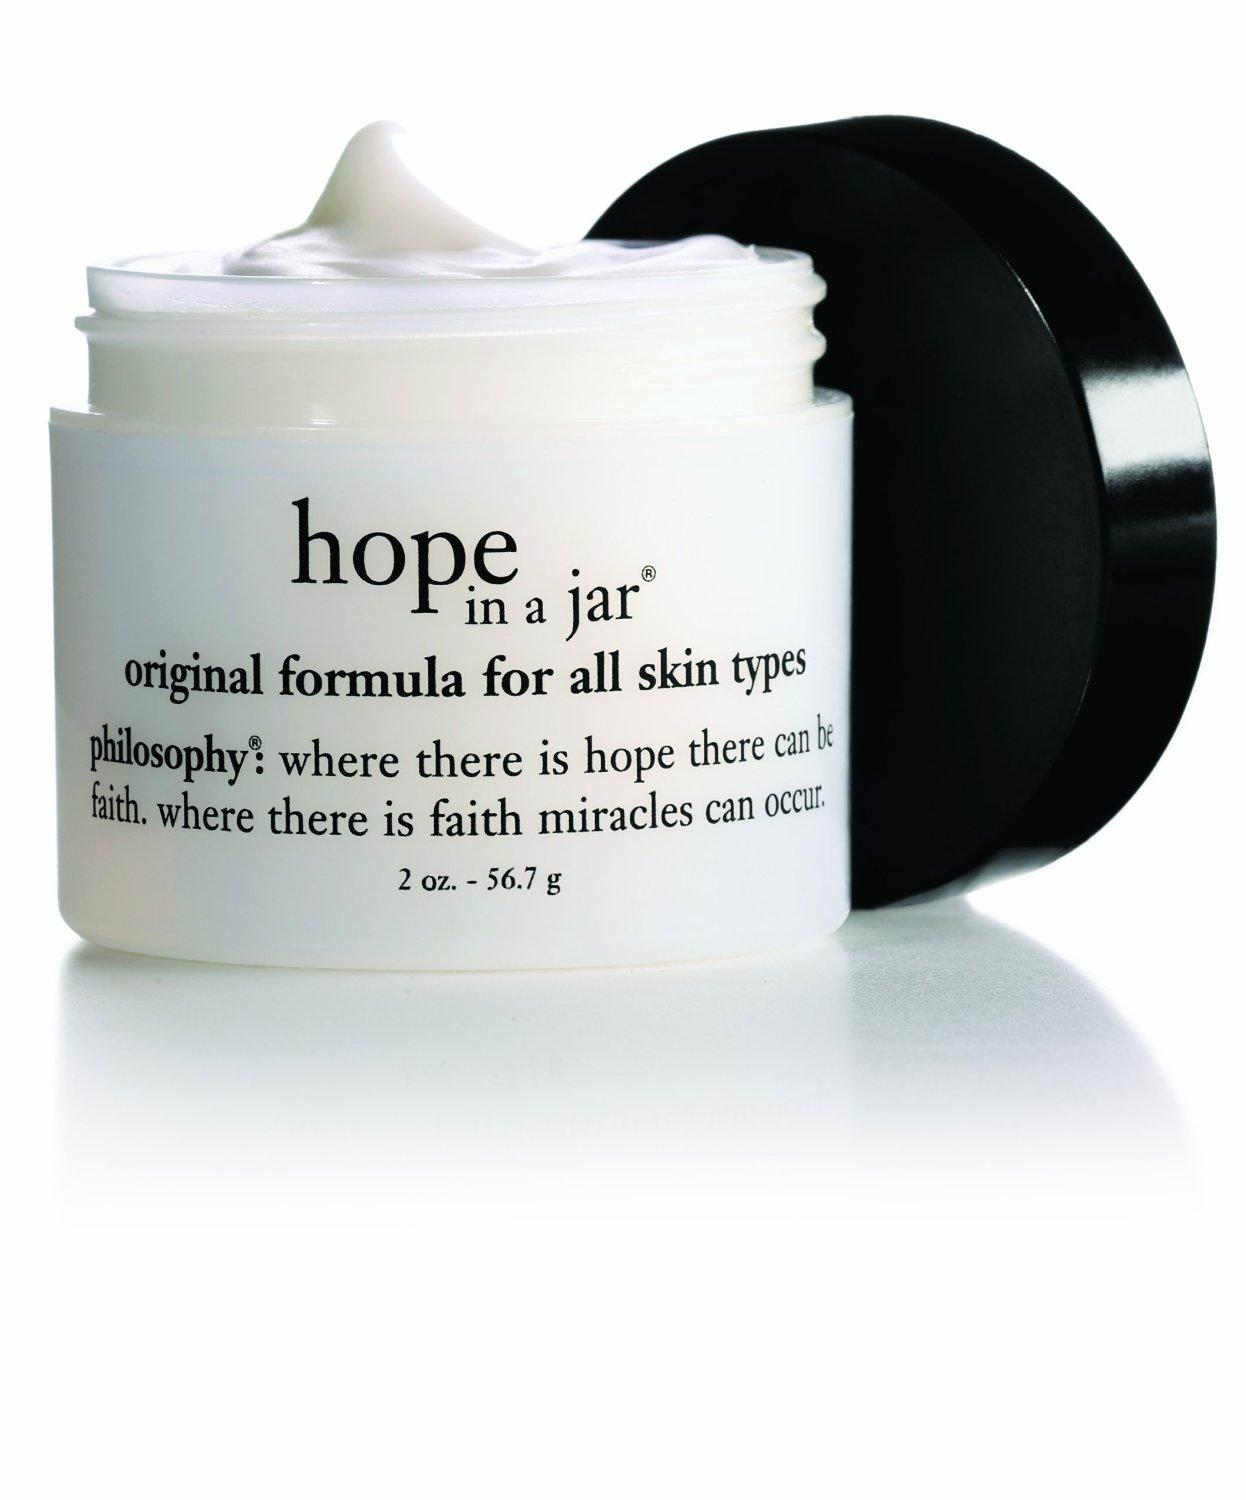 Free Full Size 'Hope in a Jar' Moisturizer With Any $45 Order @ philosophy